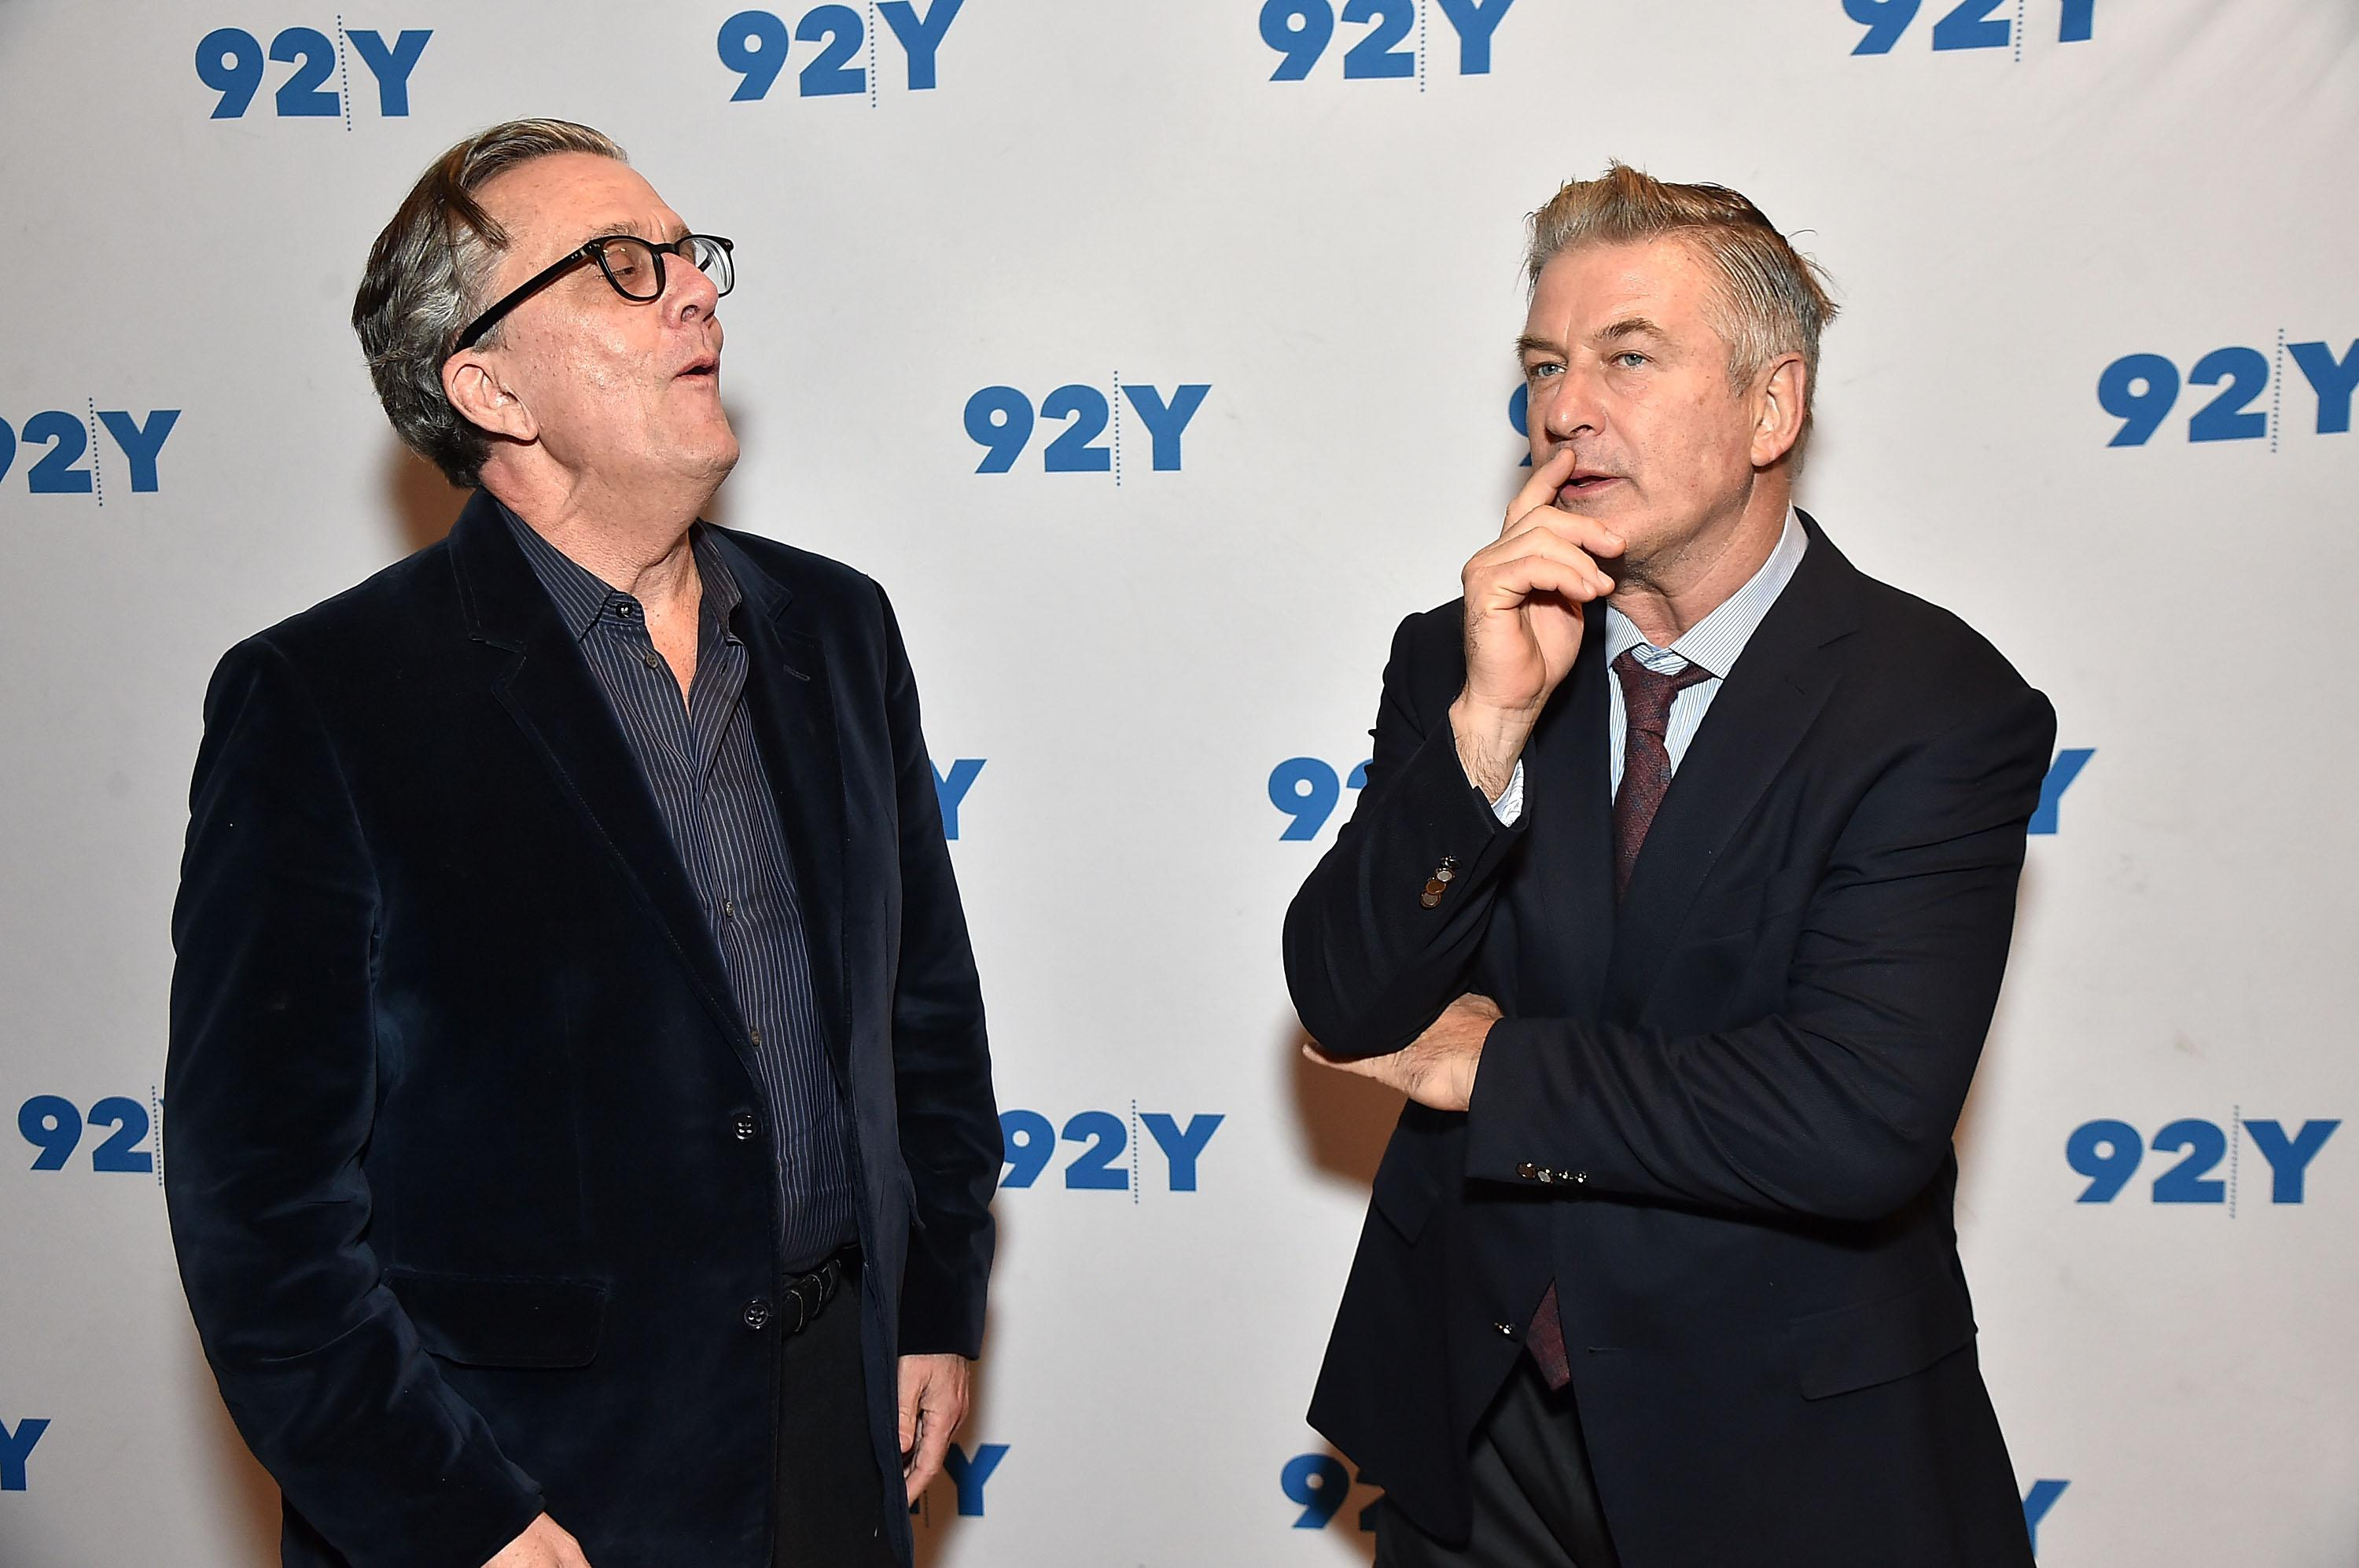 NEW YORK, NY - NOVEMBER 09:  Kurt Andersen and Alec Baldwin In Conversation With Brian Lehrer: 'You Can't Spell America Without Me' at 92nd Street Y on November 9, 2017 in New York City.  (Photo by Theo Wargo/Getty Images)